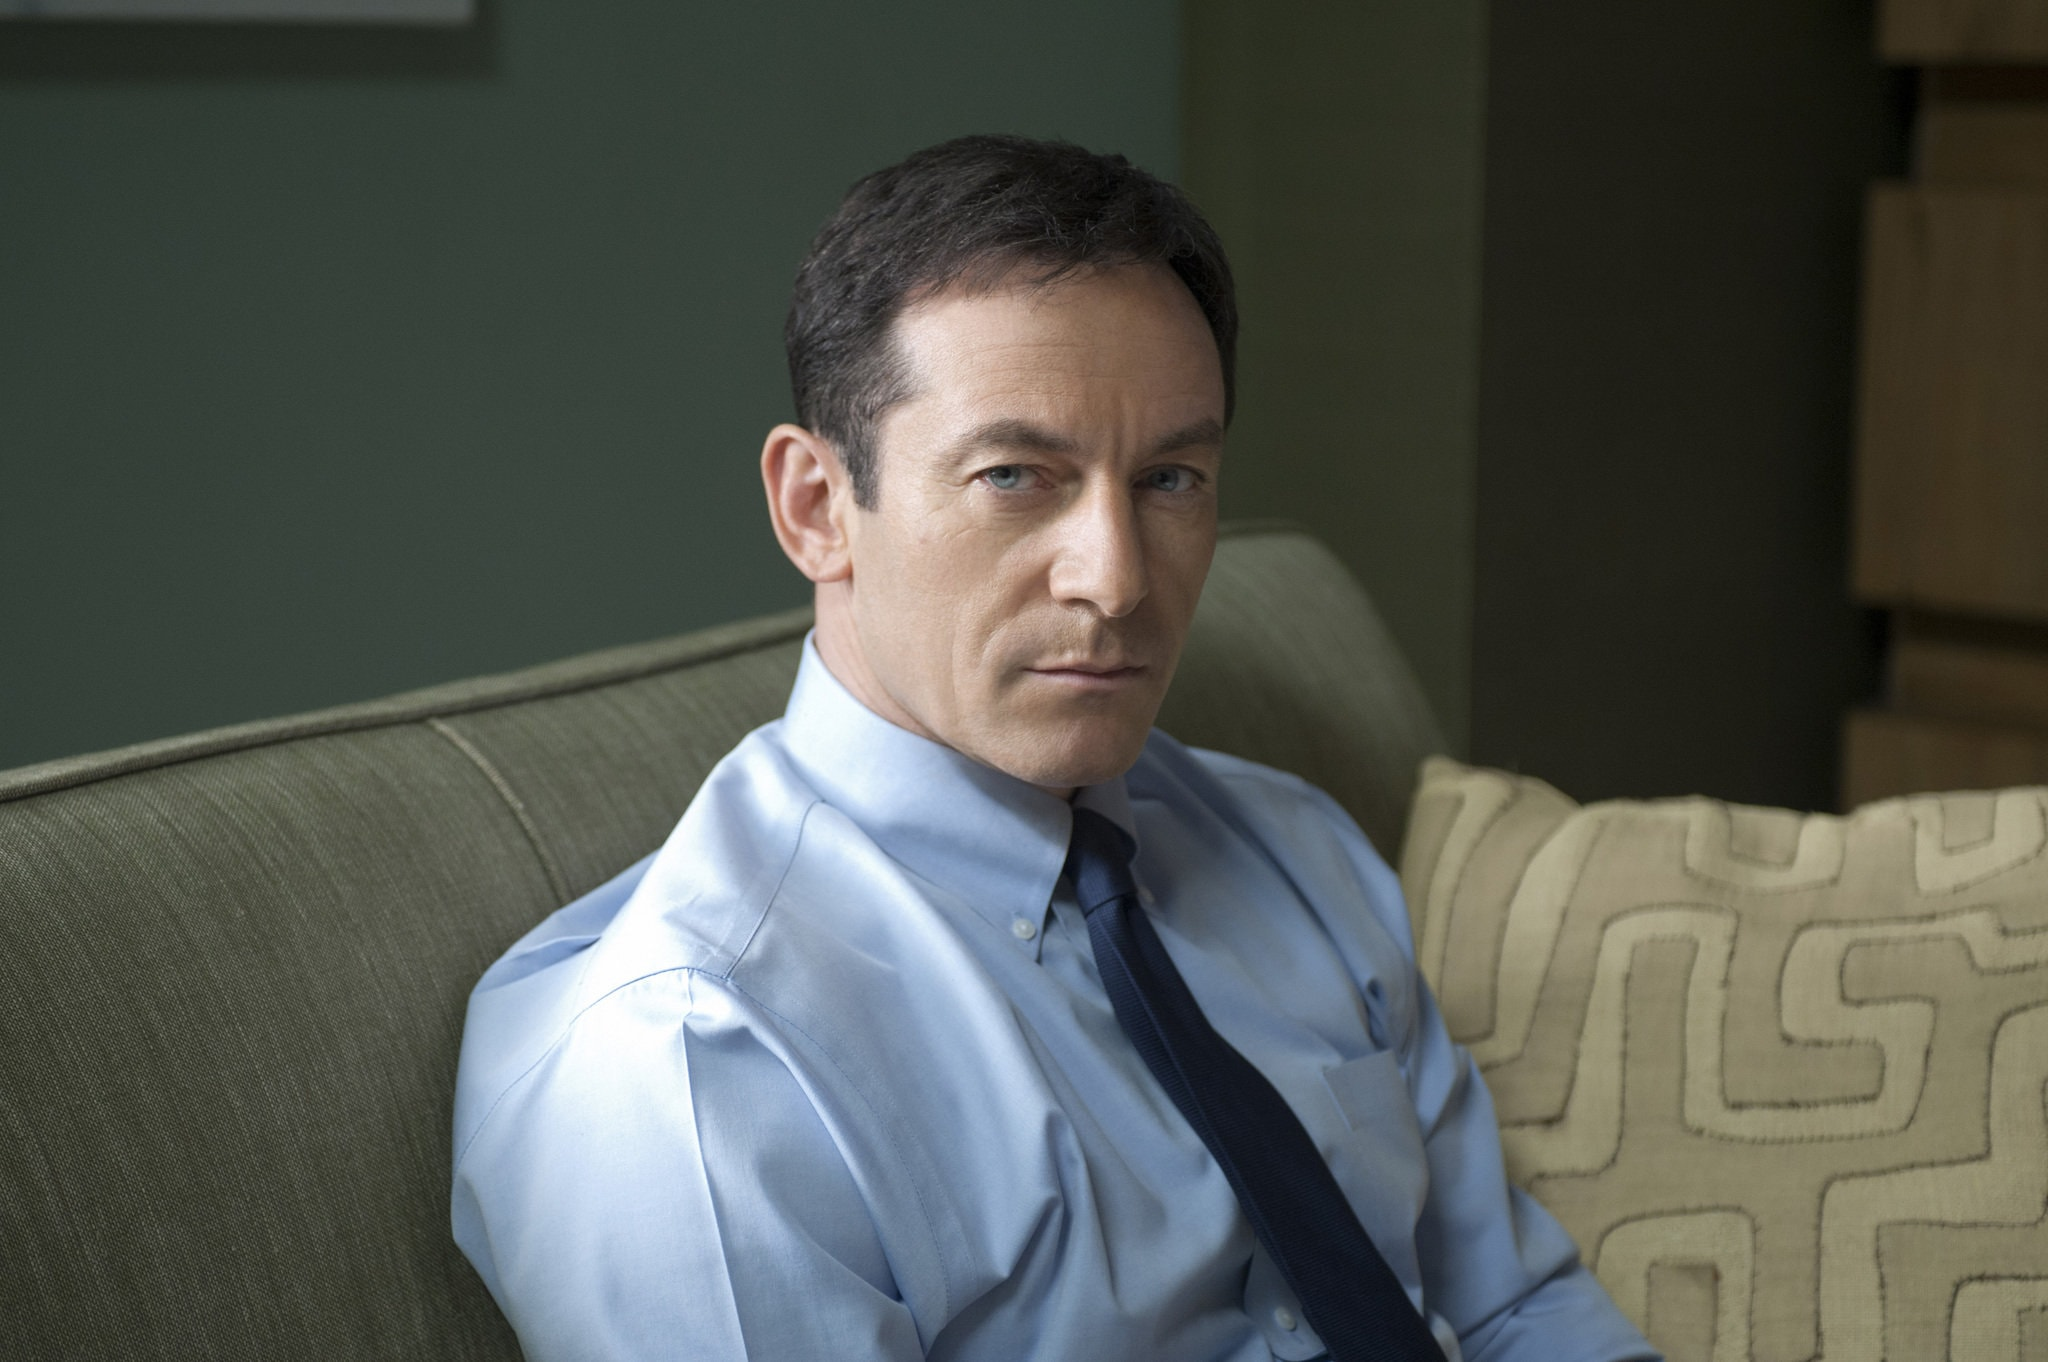 Jason Isaacs Wallpapers hd